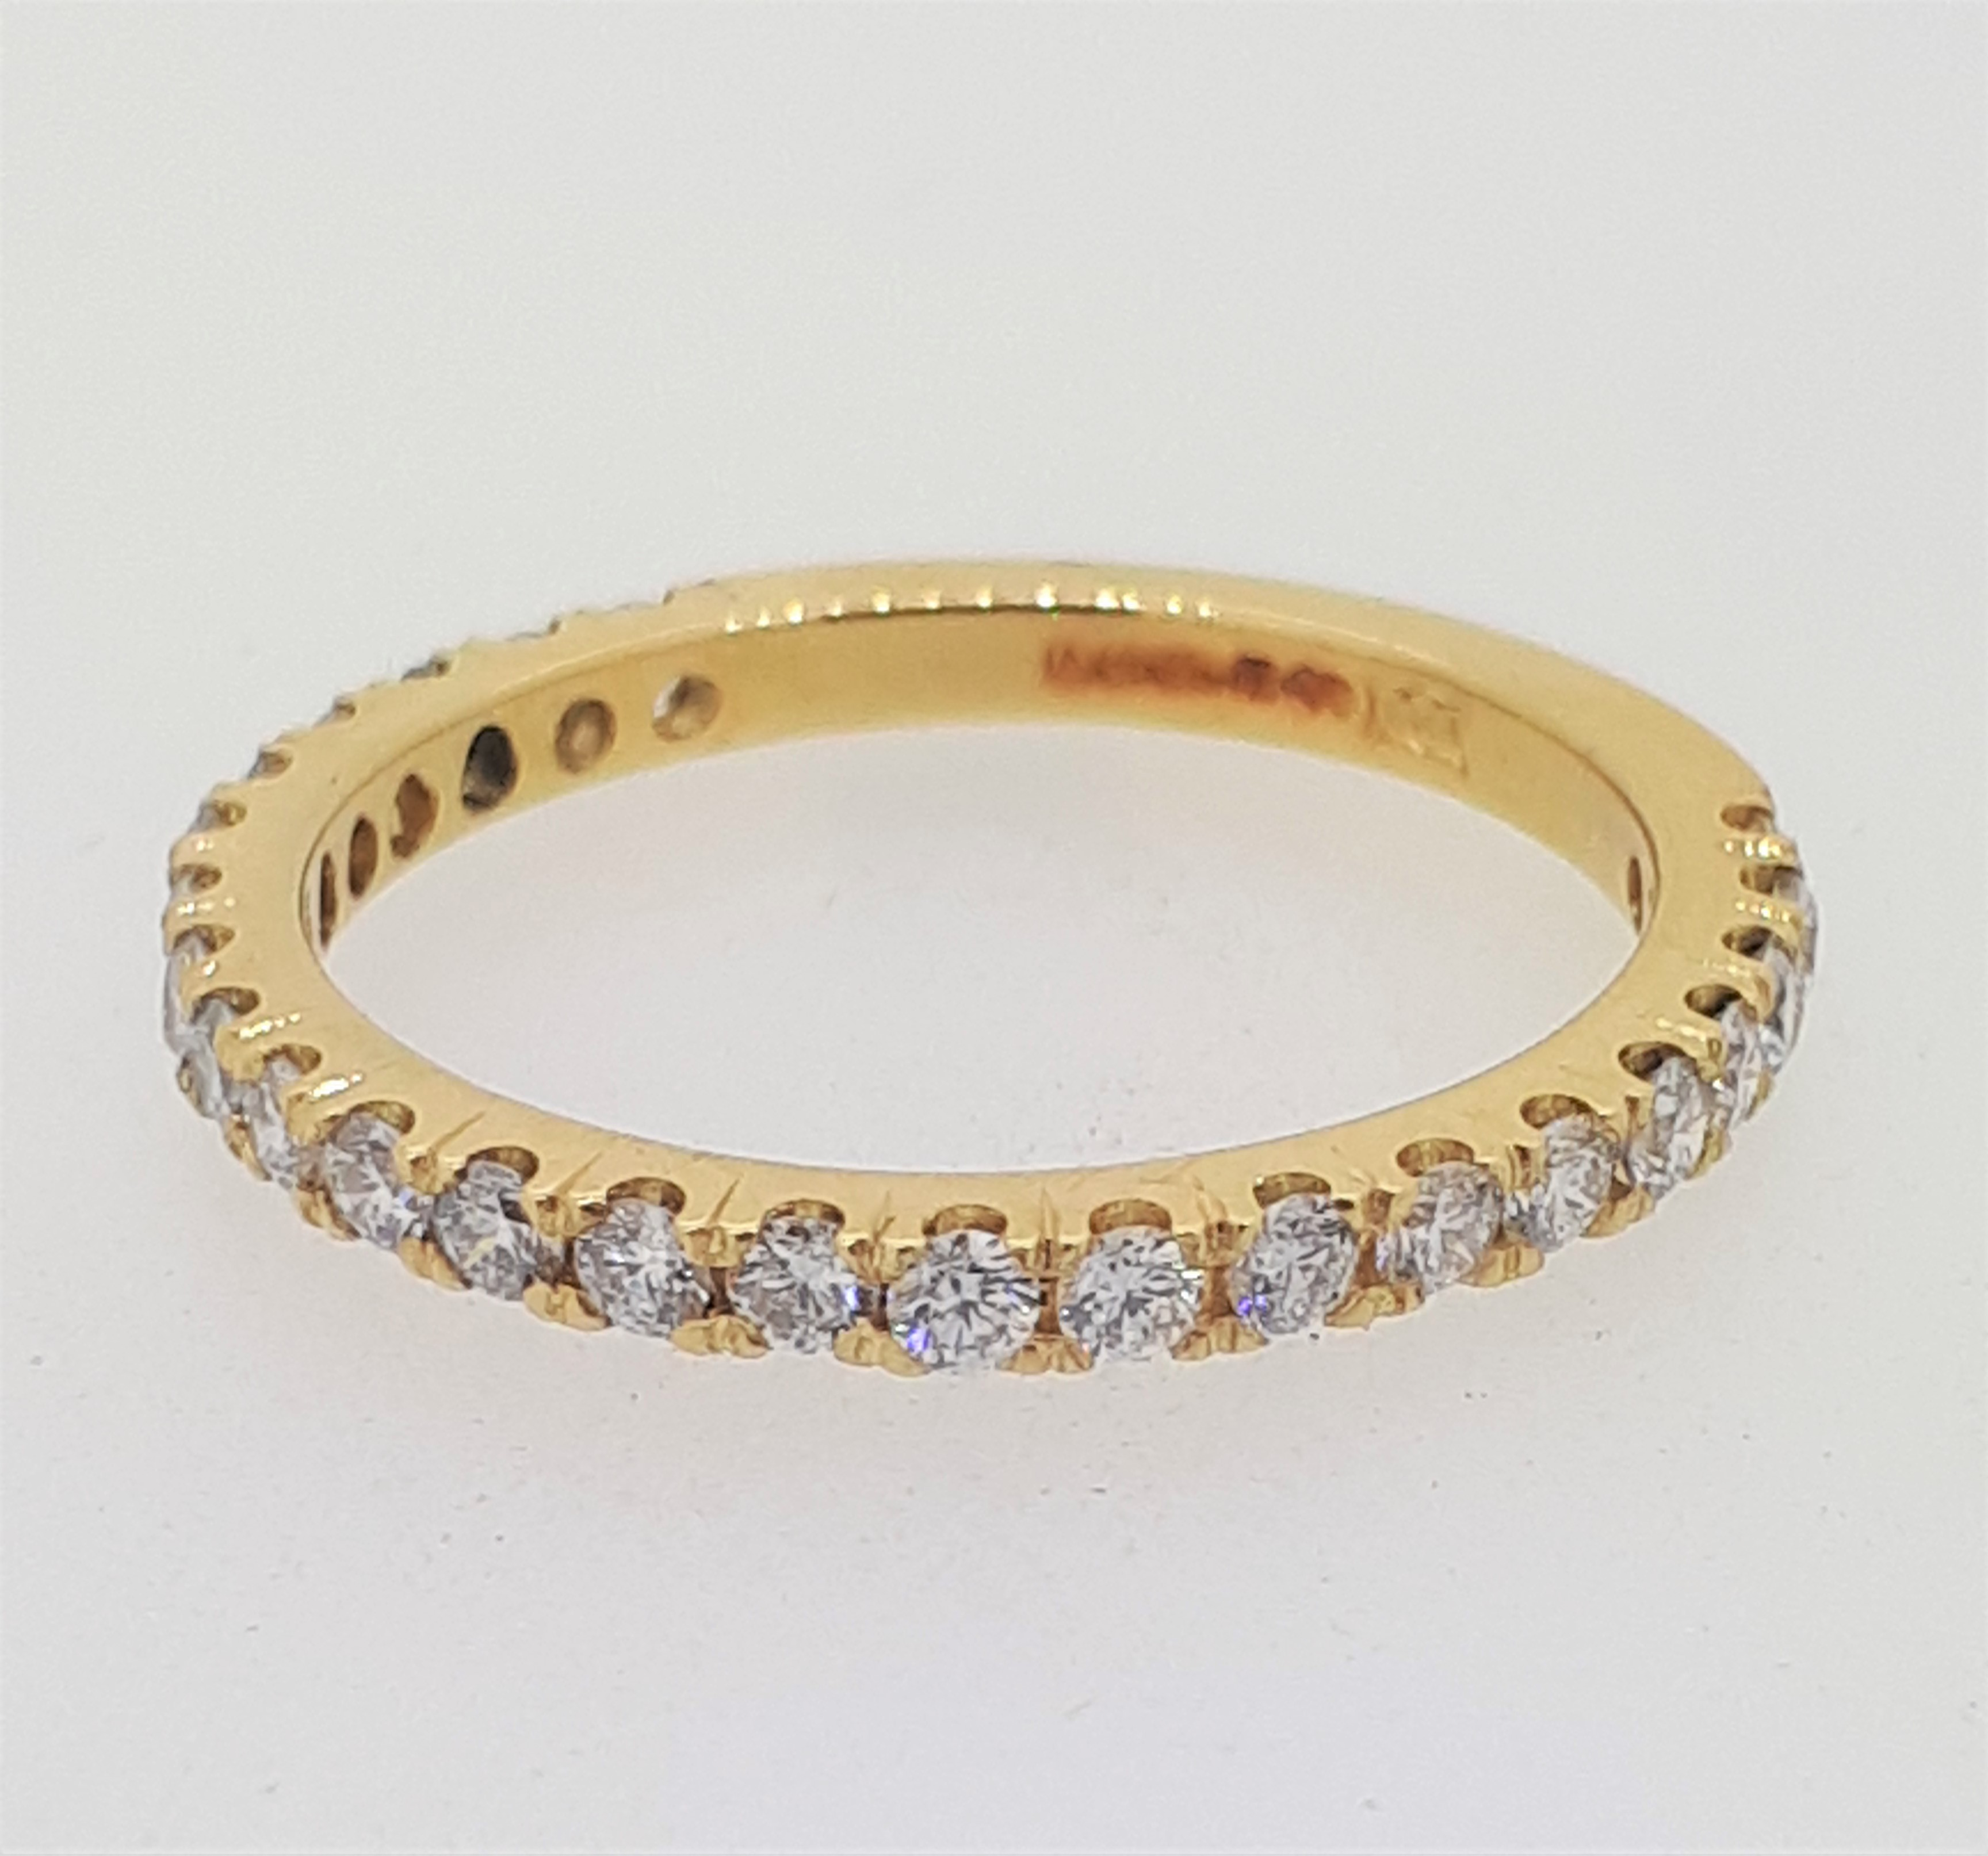 Handmade 18ct (750) yellow Gold 0.25ct 3/4 Claw Set Eternity Ring